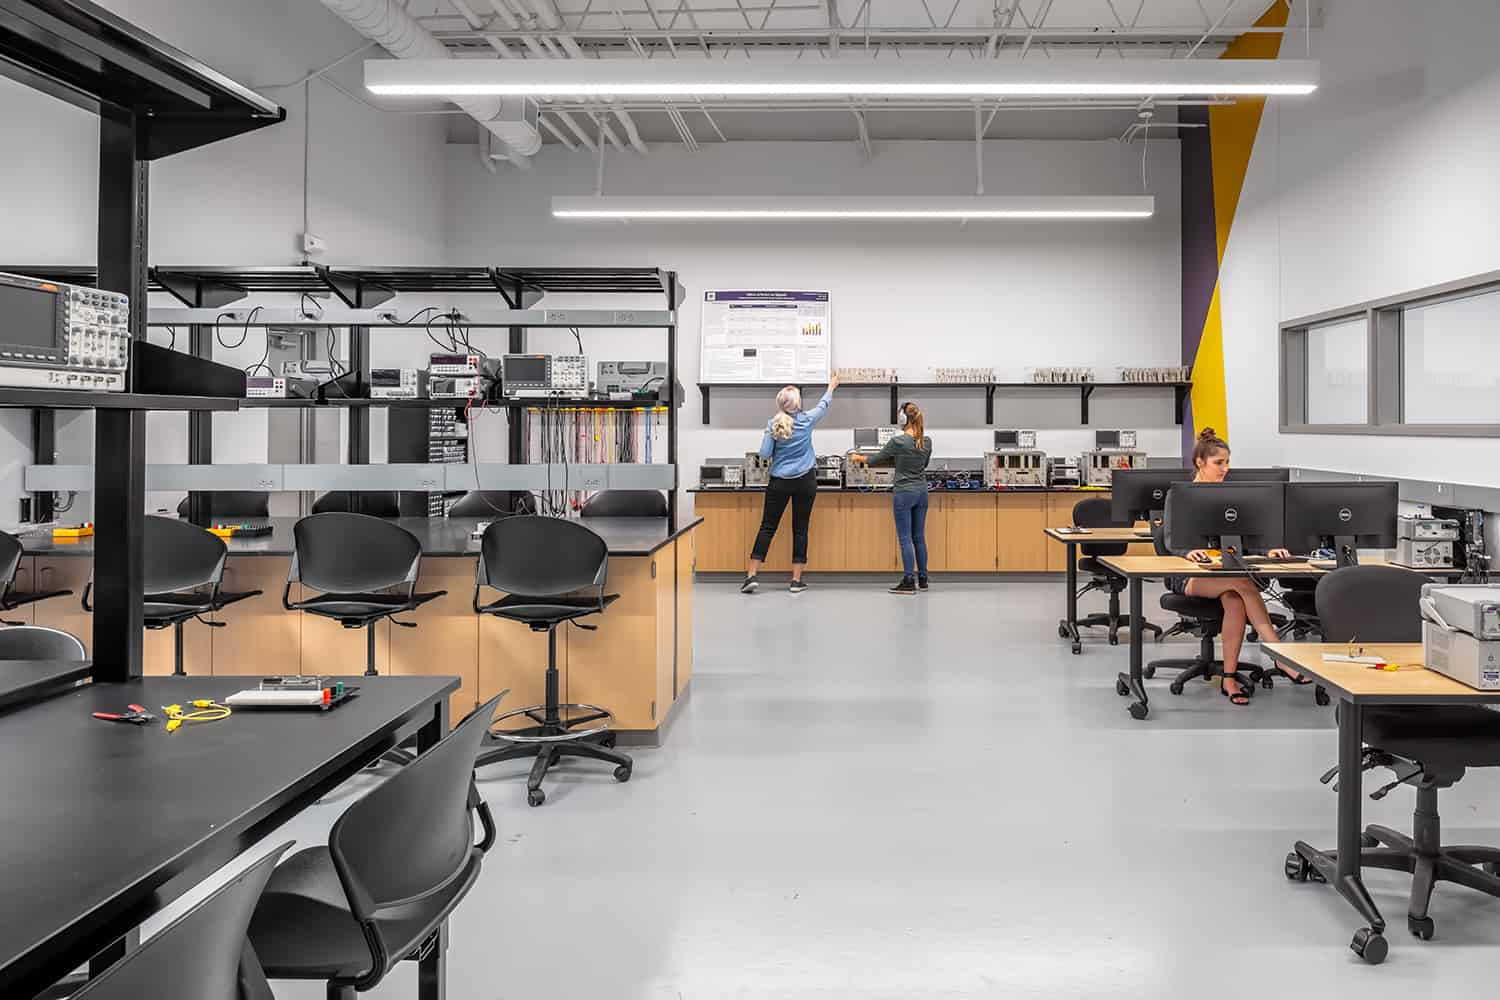 A large classroom engineering lab.